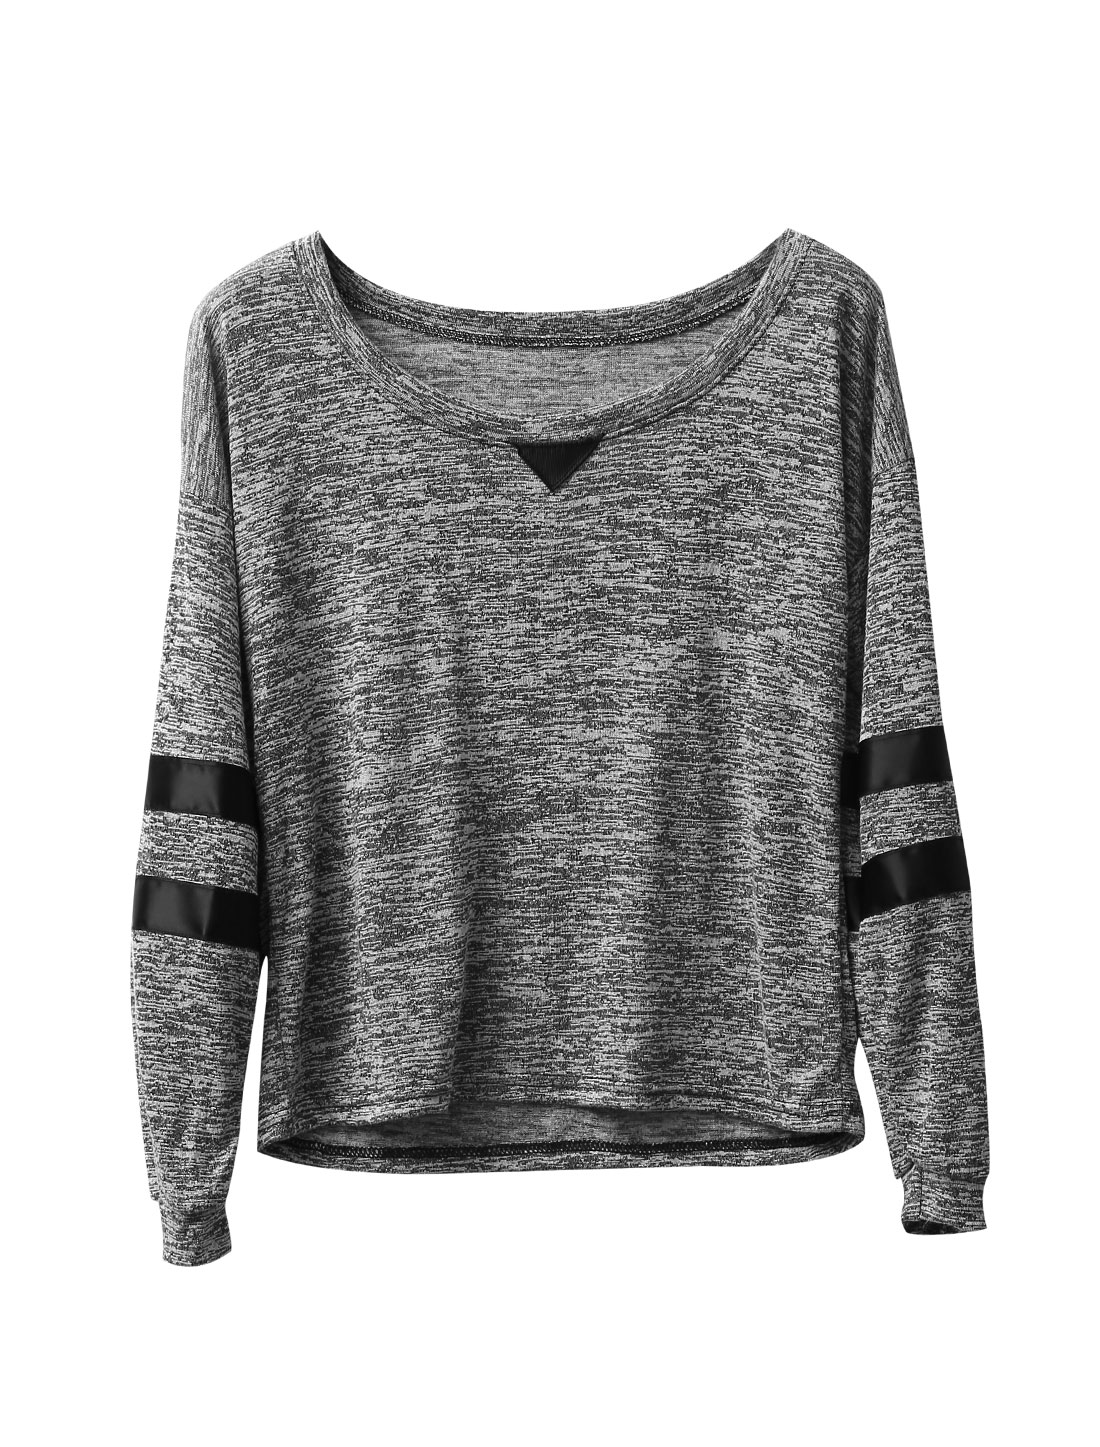 Women Round Neck Long Sleeve Spliced Detail Space-Dyed Knit Shirt Light Gray XS